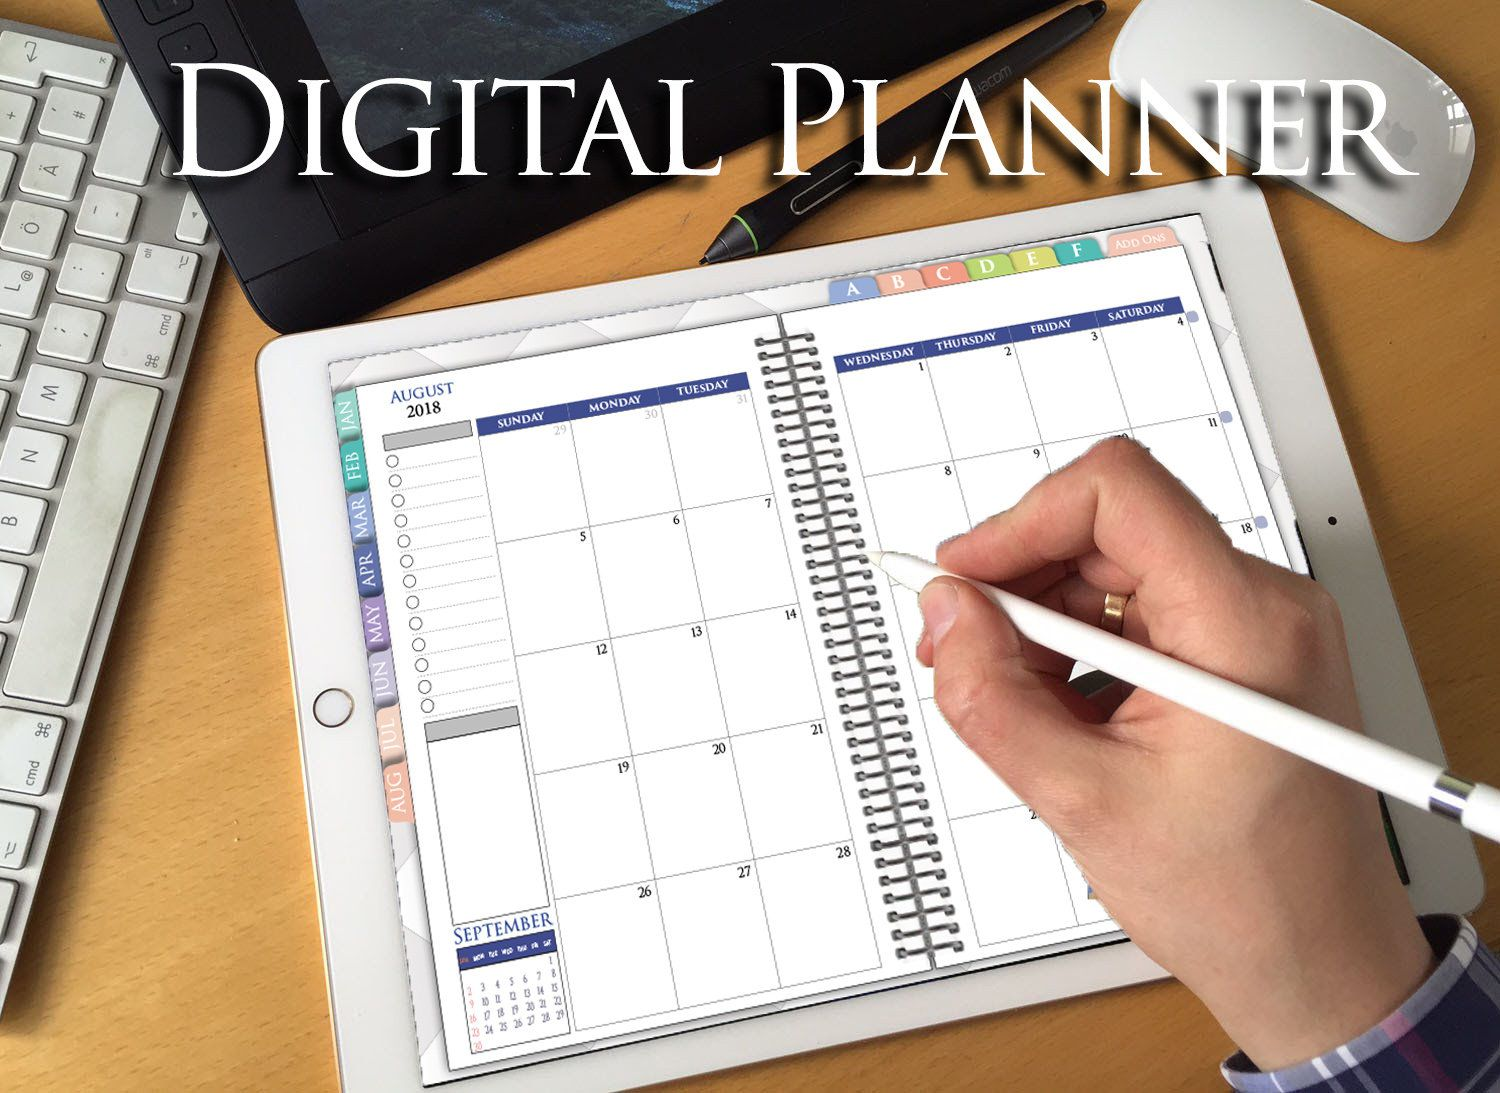 Digital Planner 2018 Goodnotes Ipad Pro Vertical Weekly